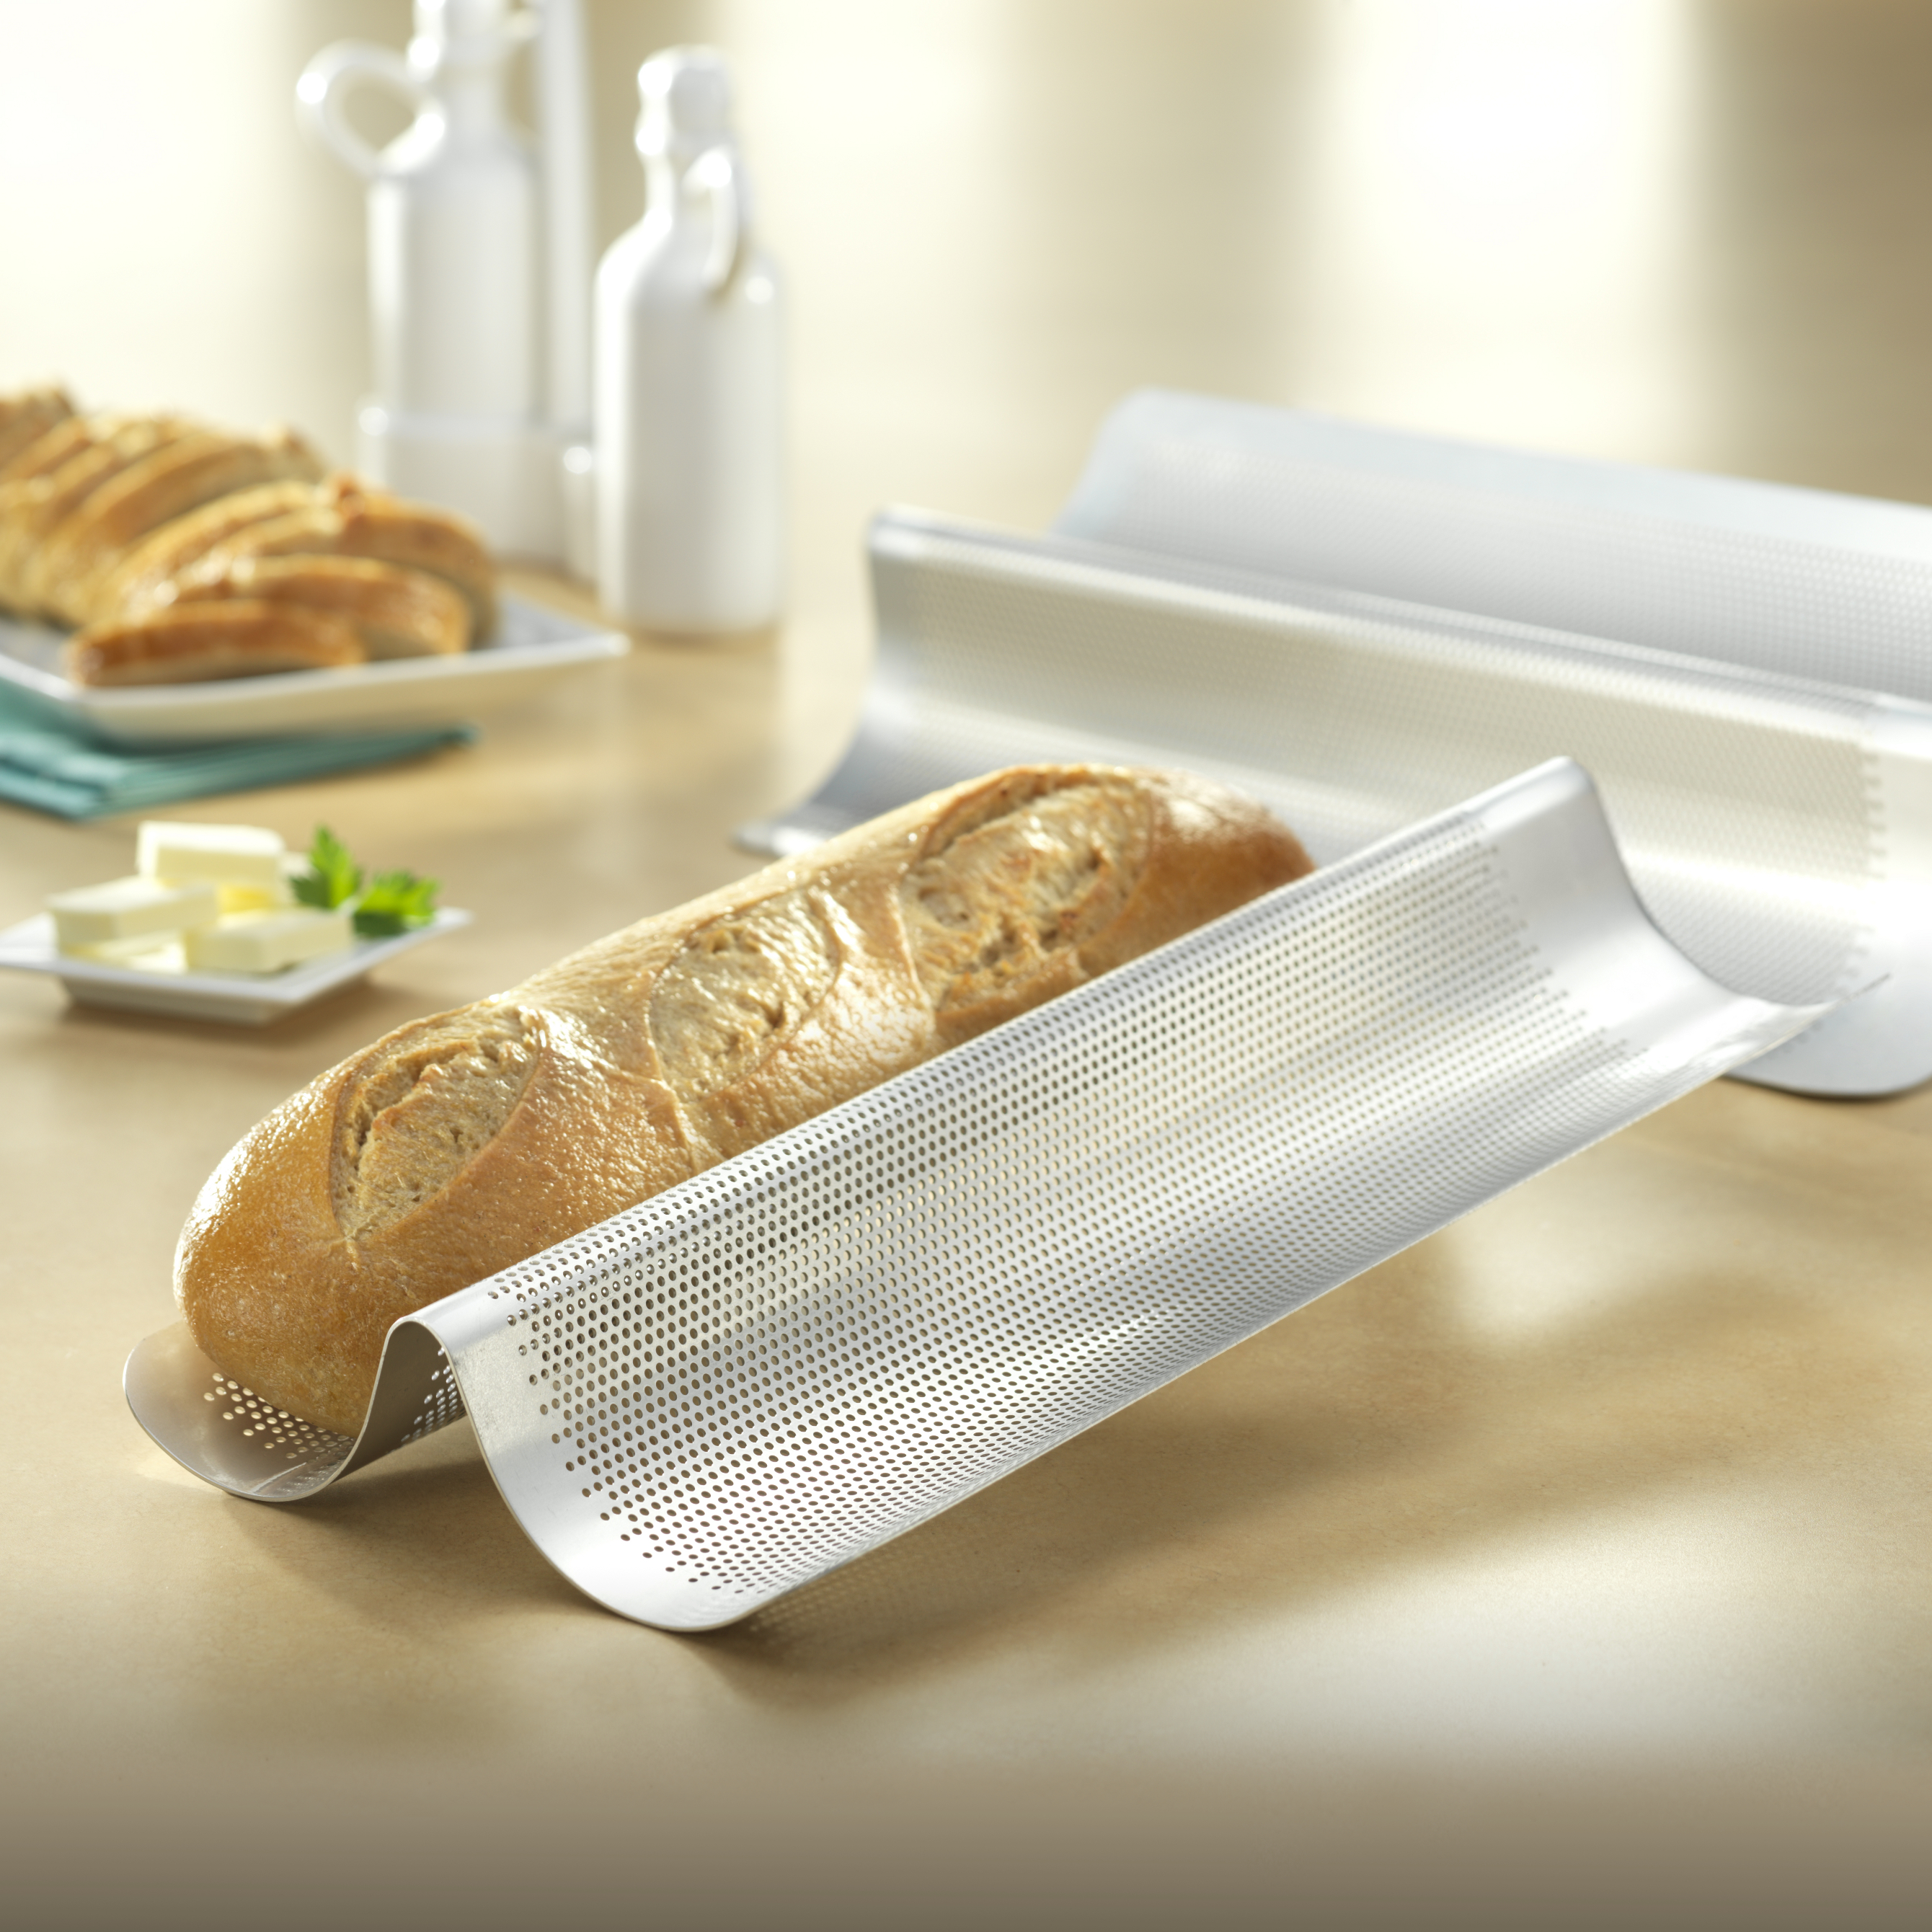 USA Pan Perforated Aluminized Steel Double Welled Italian Loaf Pan, 8 x 16 Inch